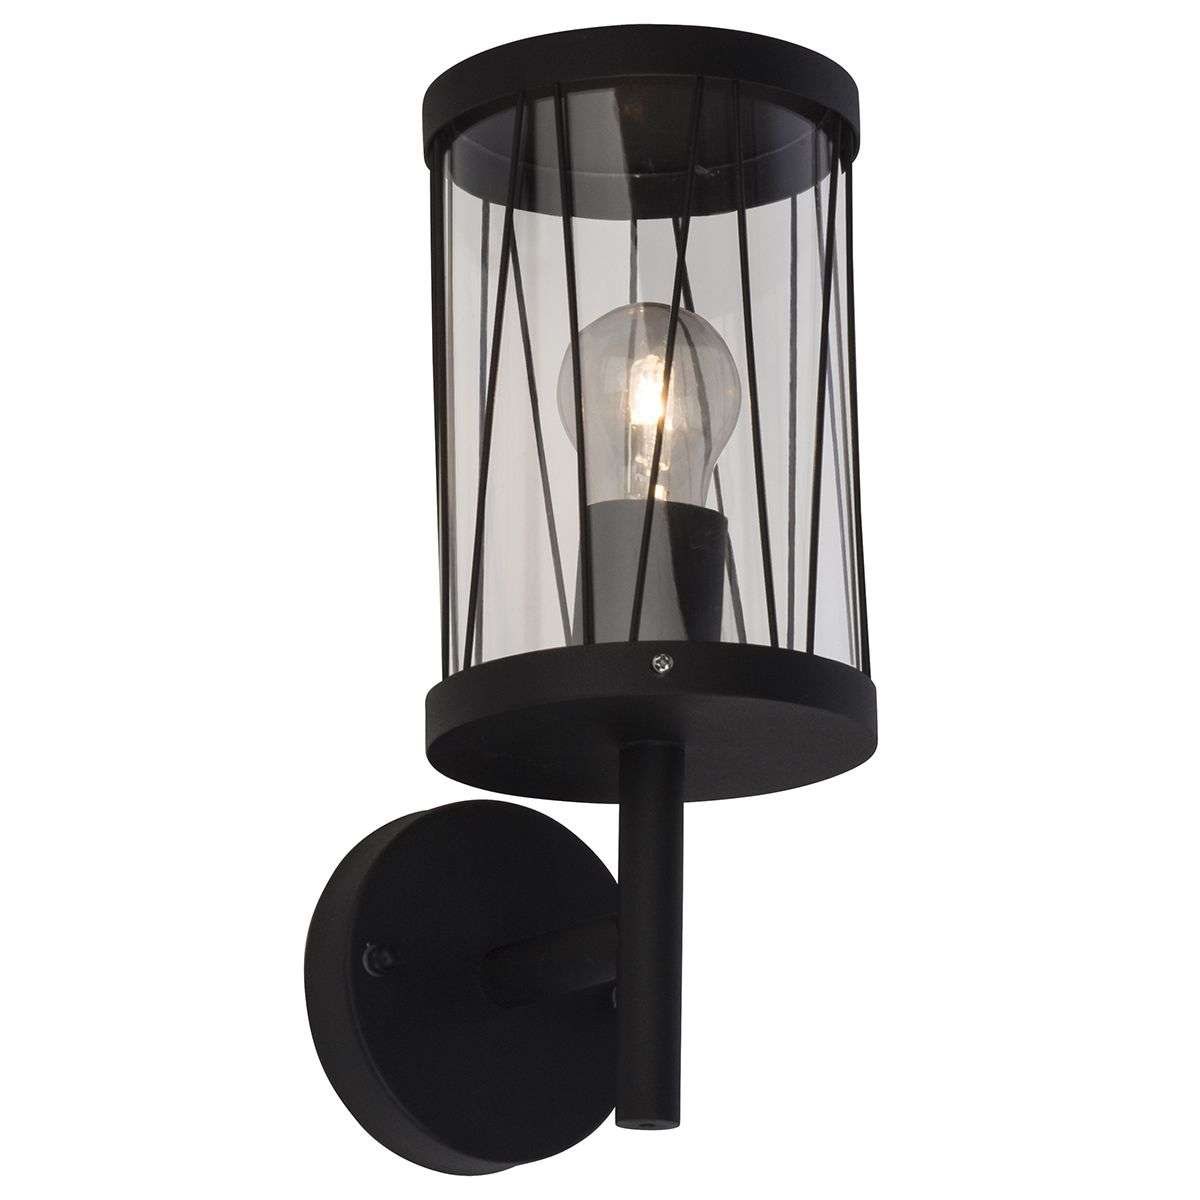 Black outdoor wall lamp reed with wall bracket lights black outdoor wall lamp reed with wall bracket 1509158 31 aloadofball Choice Image